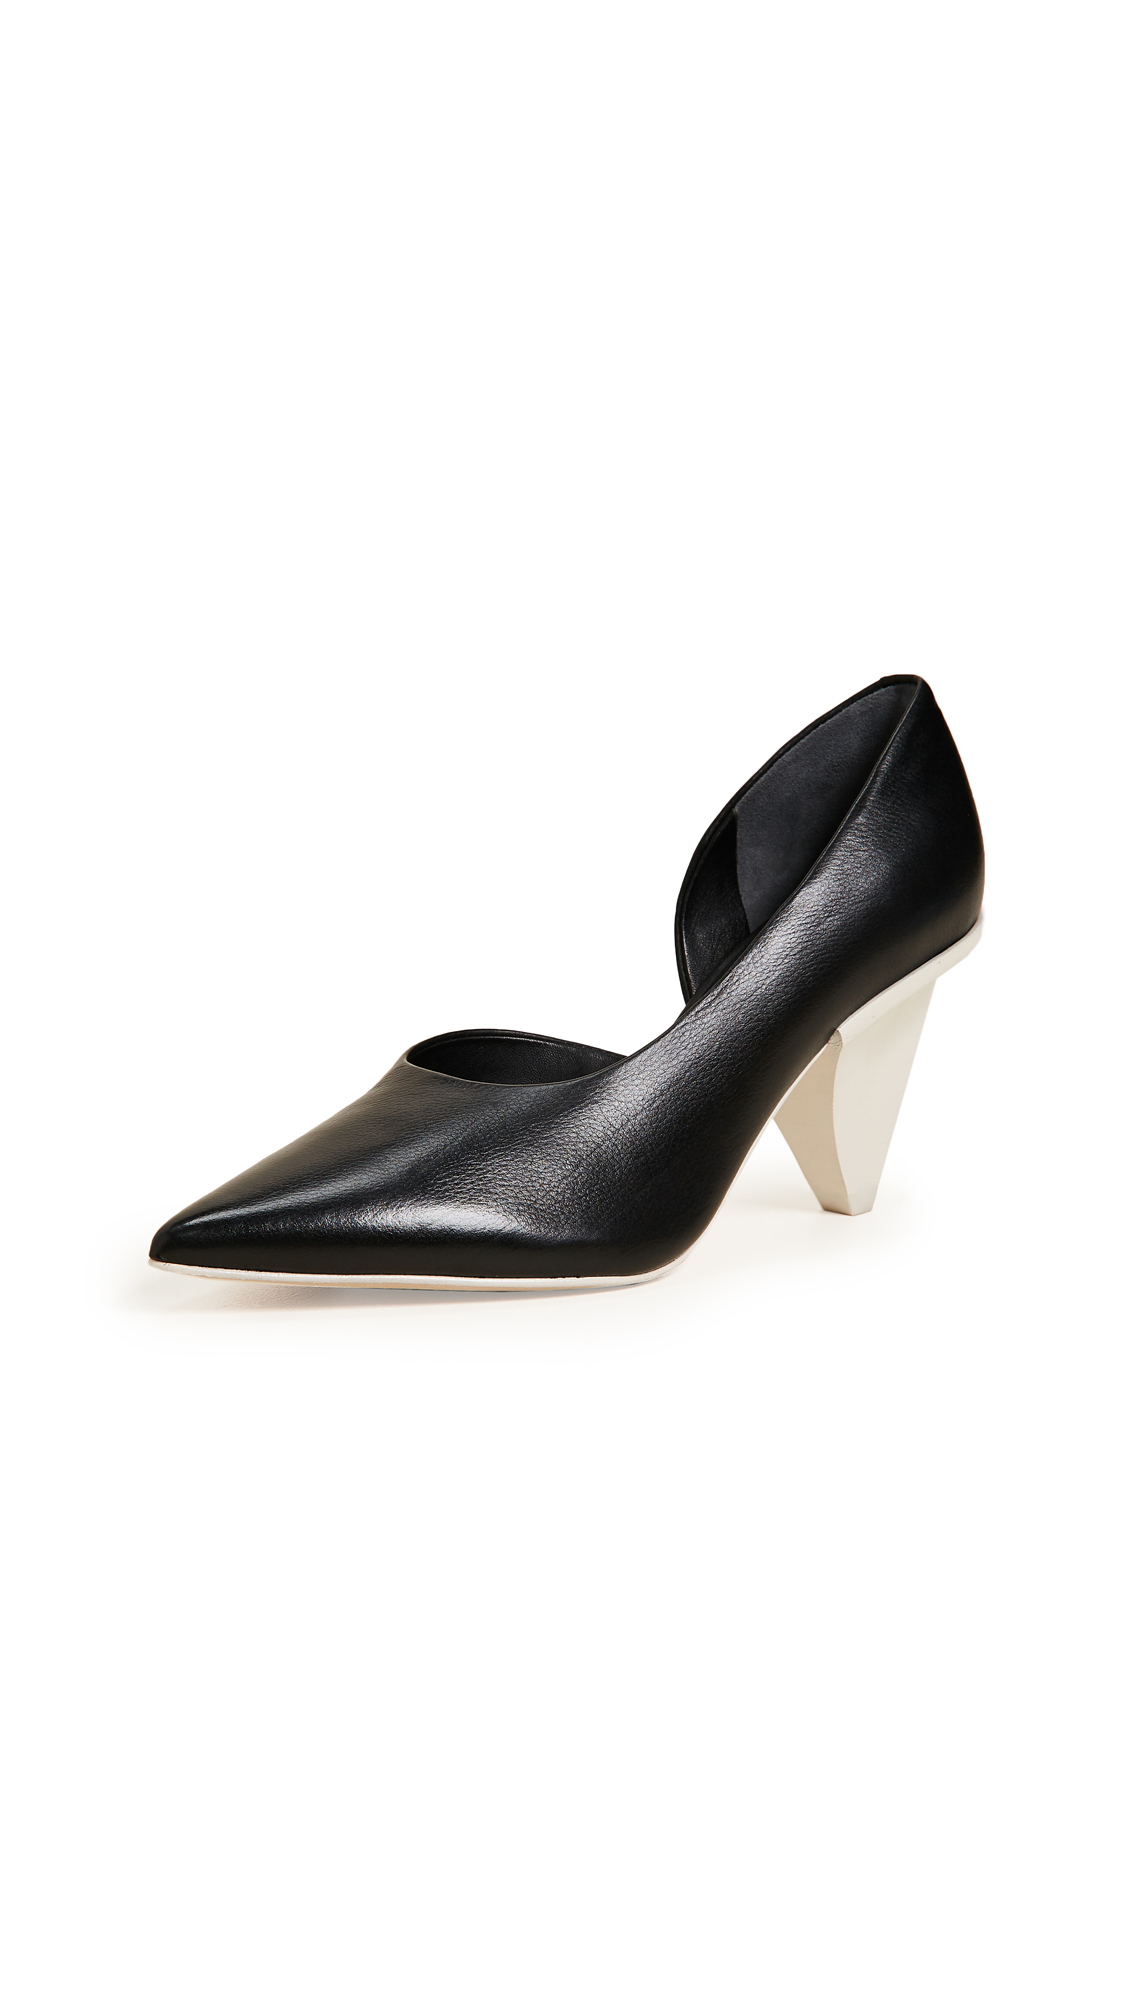 Sigerson Morrison Garson Point Toe Pumps - Black